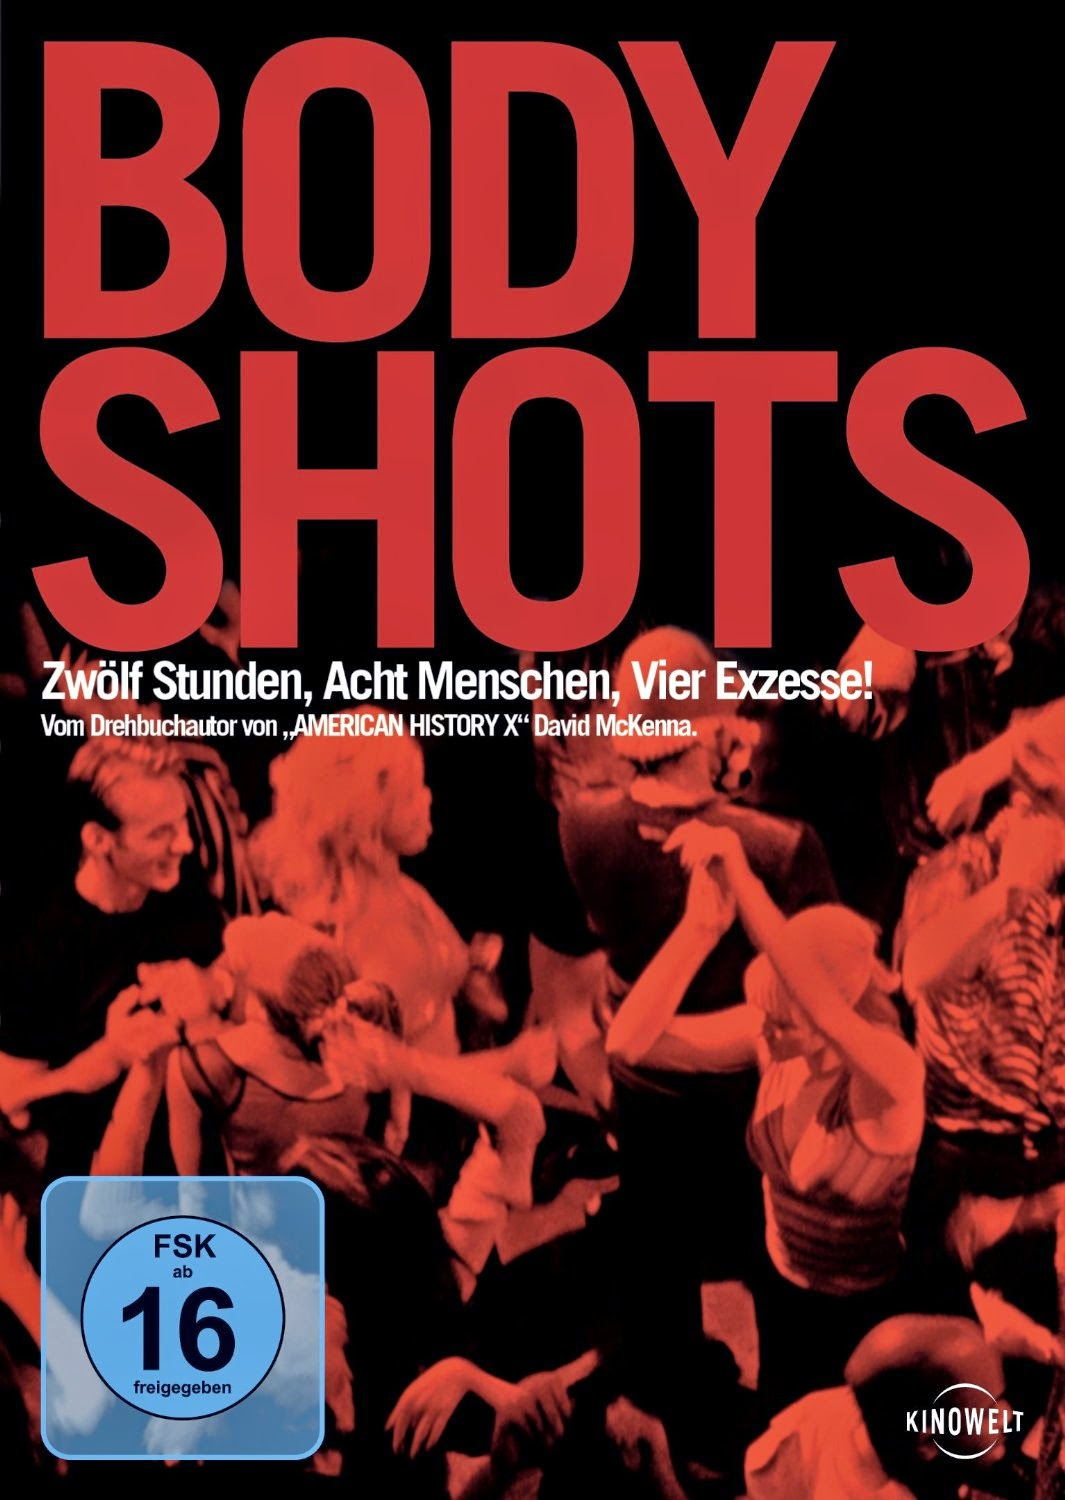 Body shots movie